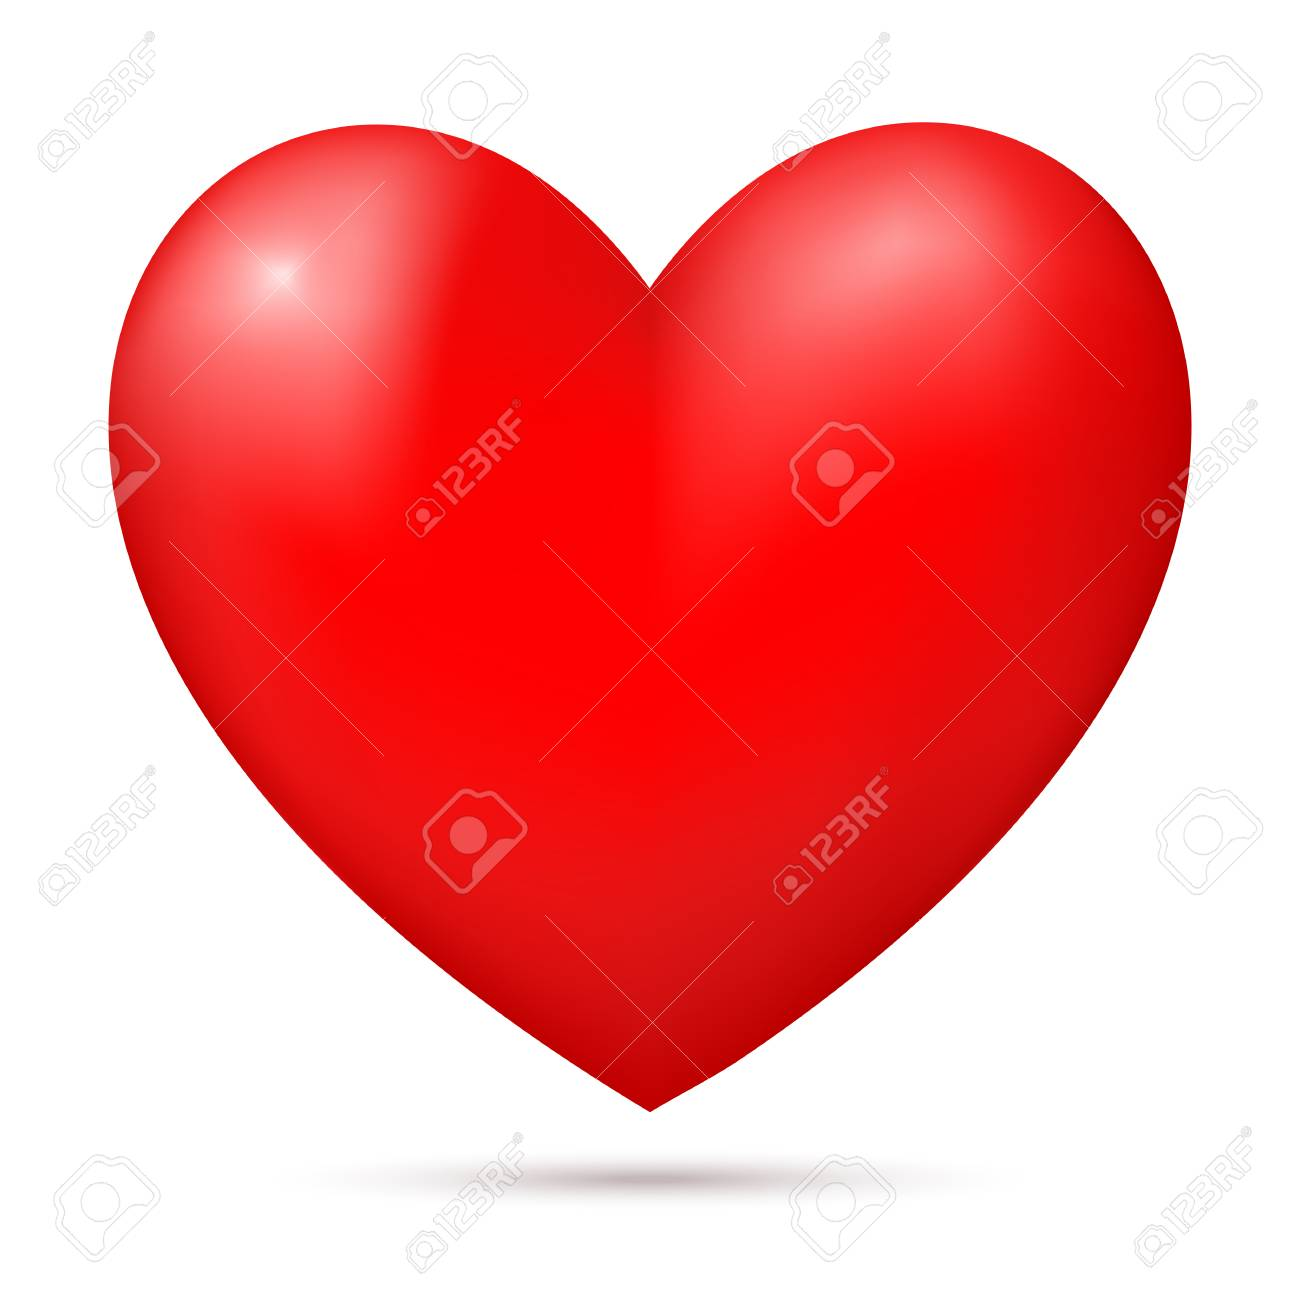 Red 3d heart isolated on white background. Banner, poster template, decoration element. Vector illustration. - 121546930